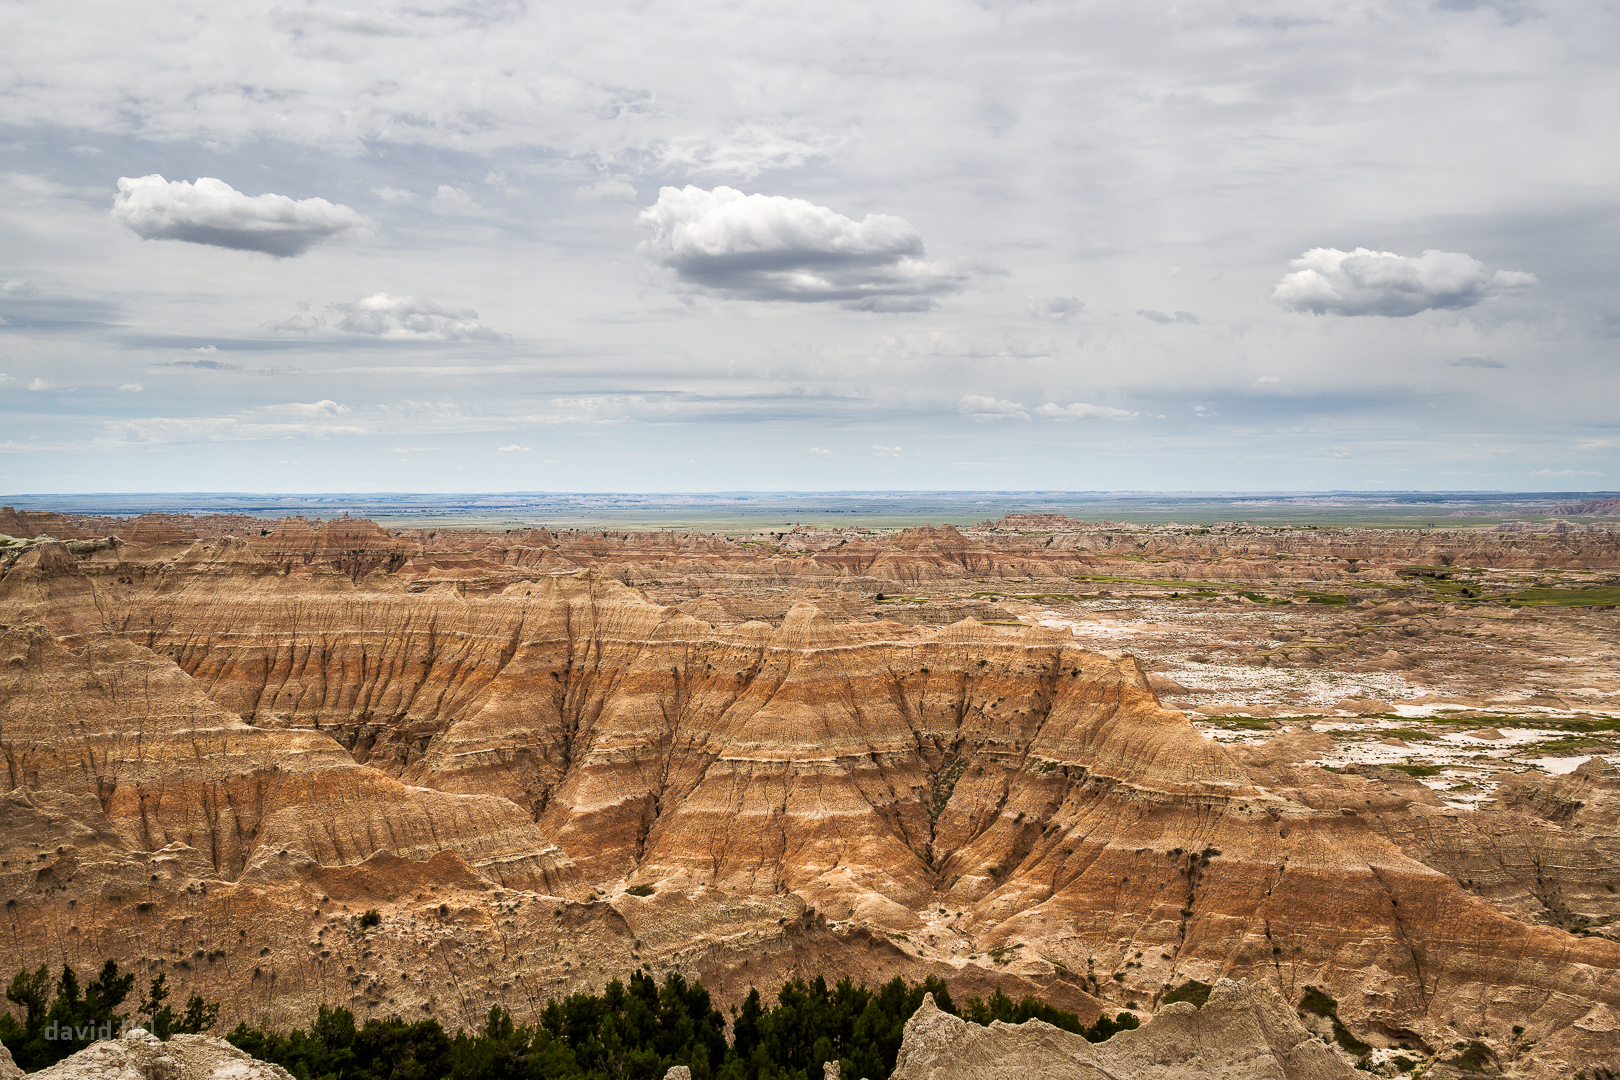 The eroded ridges and spires unveil the many different layers of rock and soil usually concealed beneath the grasslands of Badlands.